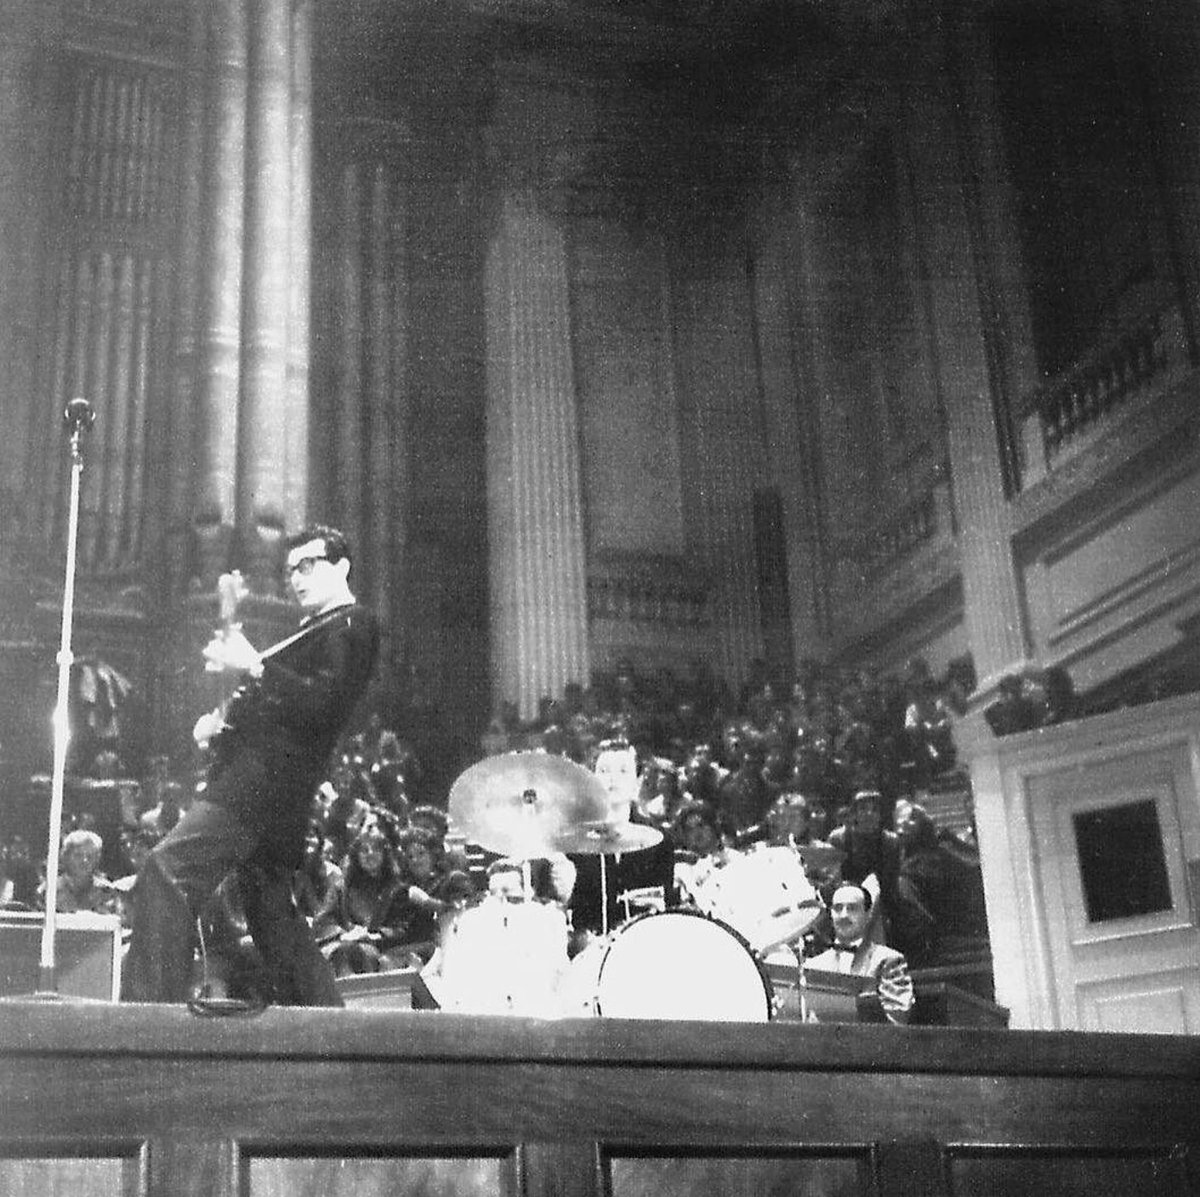 Give me a Time machine  Buddy Holly 1958 at the Birmingham Town Hall, UK #rocknroll pic.twitter.com/yKVMuHZGIi